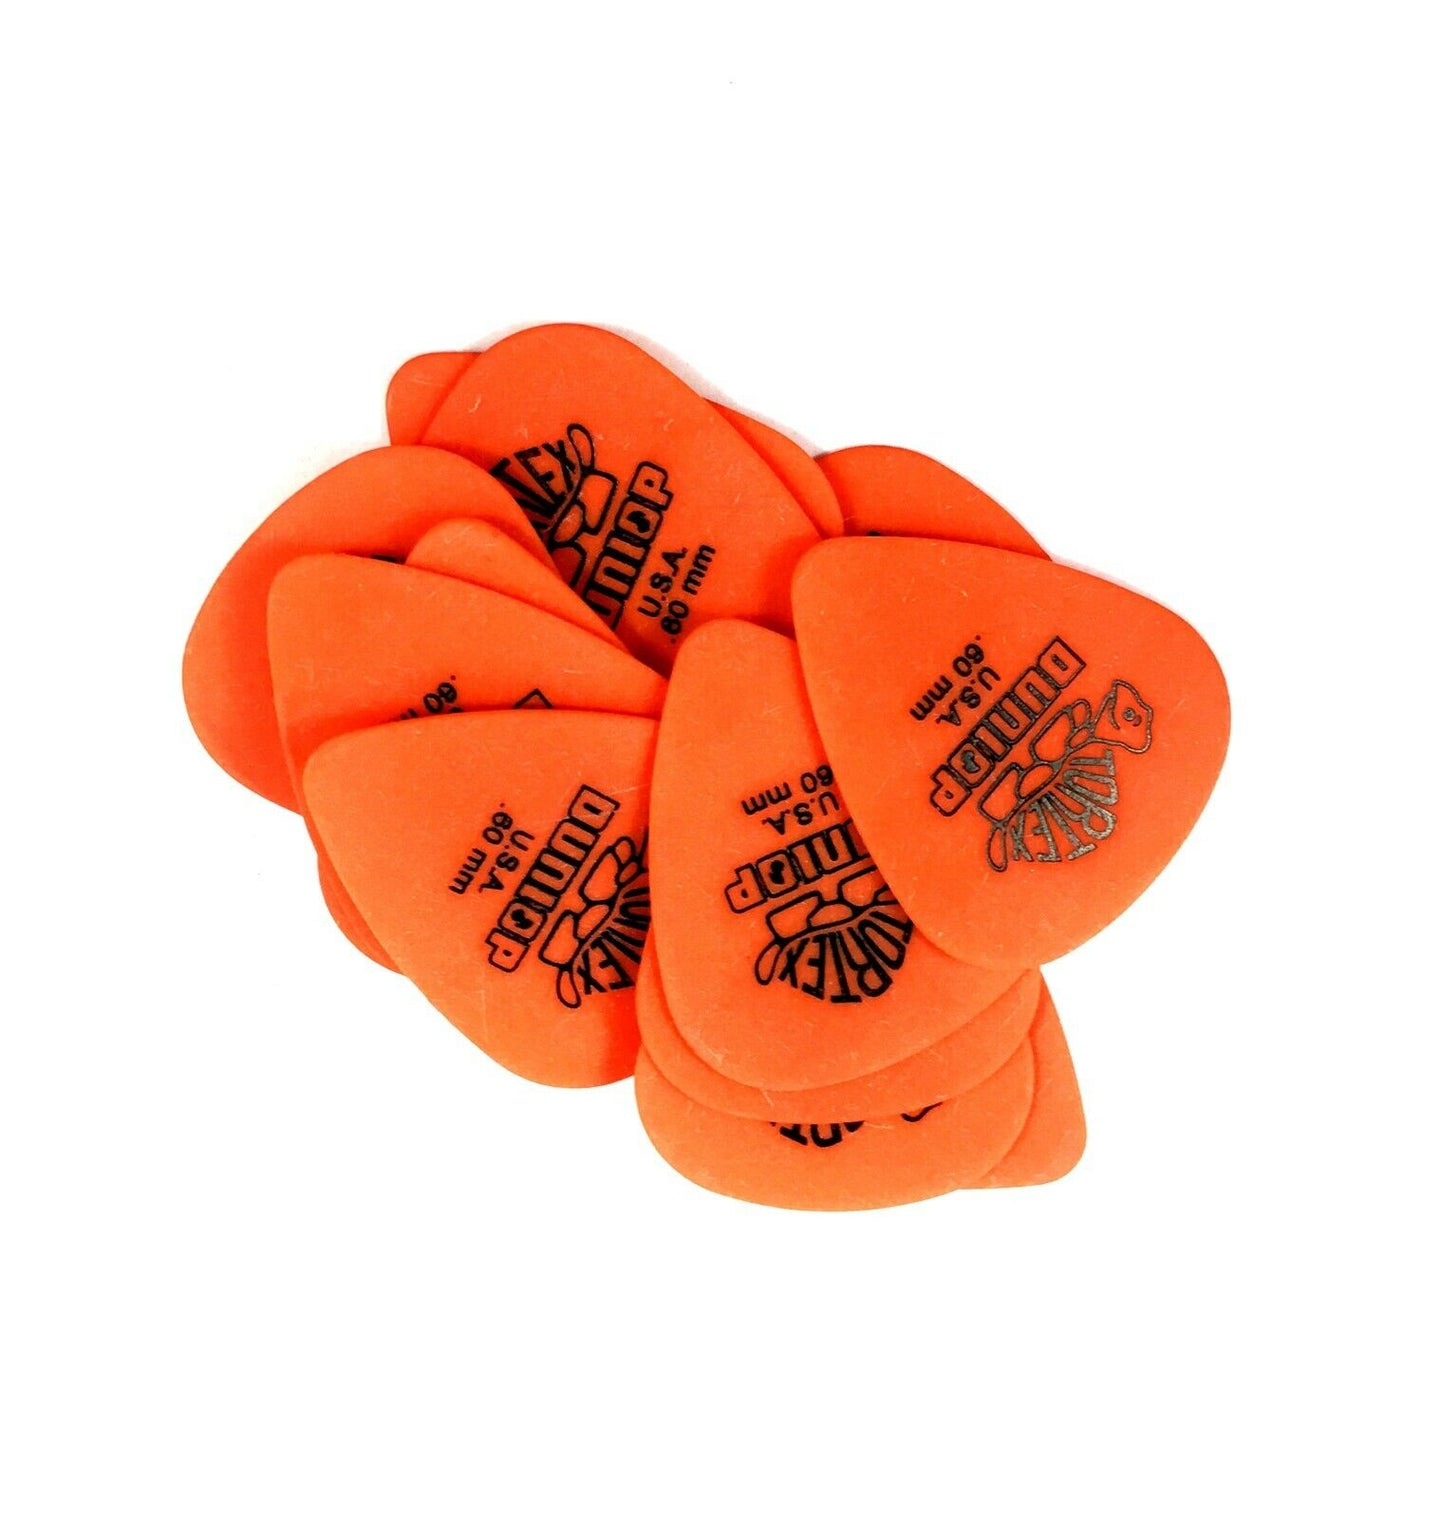 Dunlop Guitar Picks  Tortex   12 Pack  .60mm  Light  Orange  (418.P60).